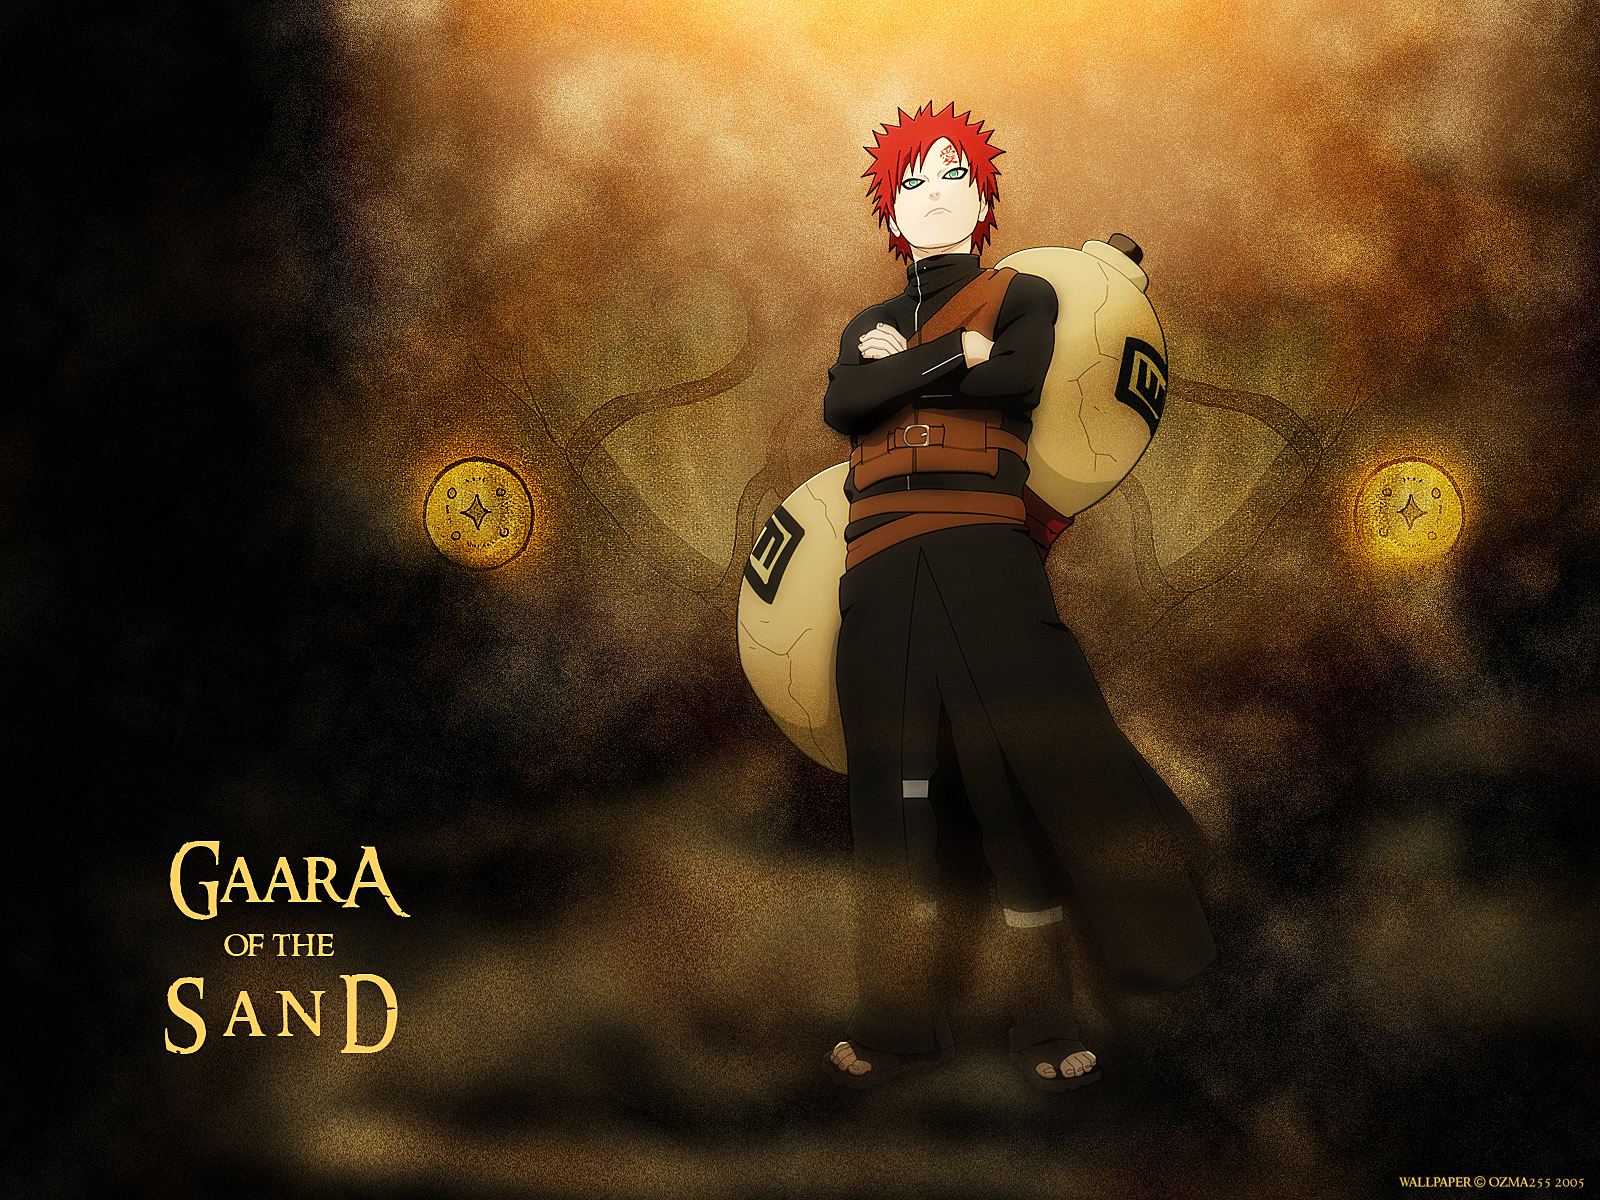 image Gaara Wallpaper Naruto Anime Wallpapers PC Android iPhone 1600x1200